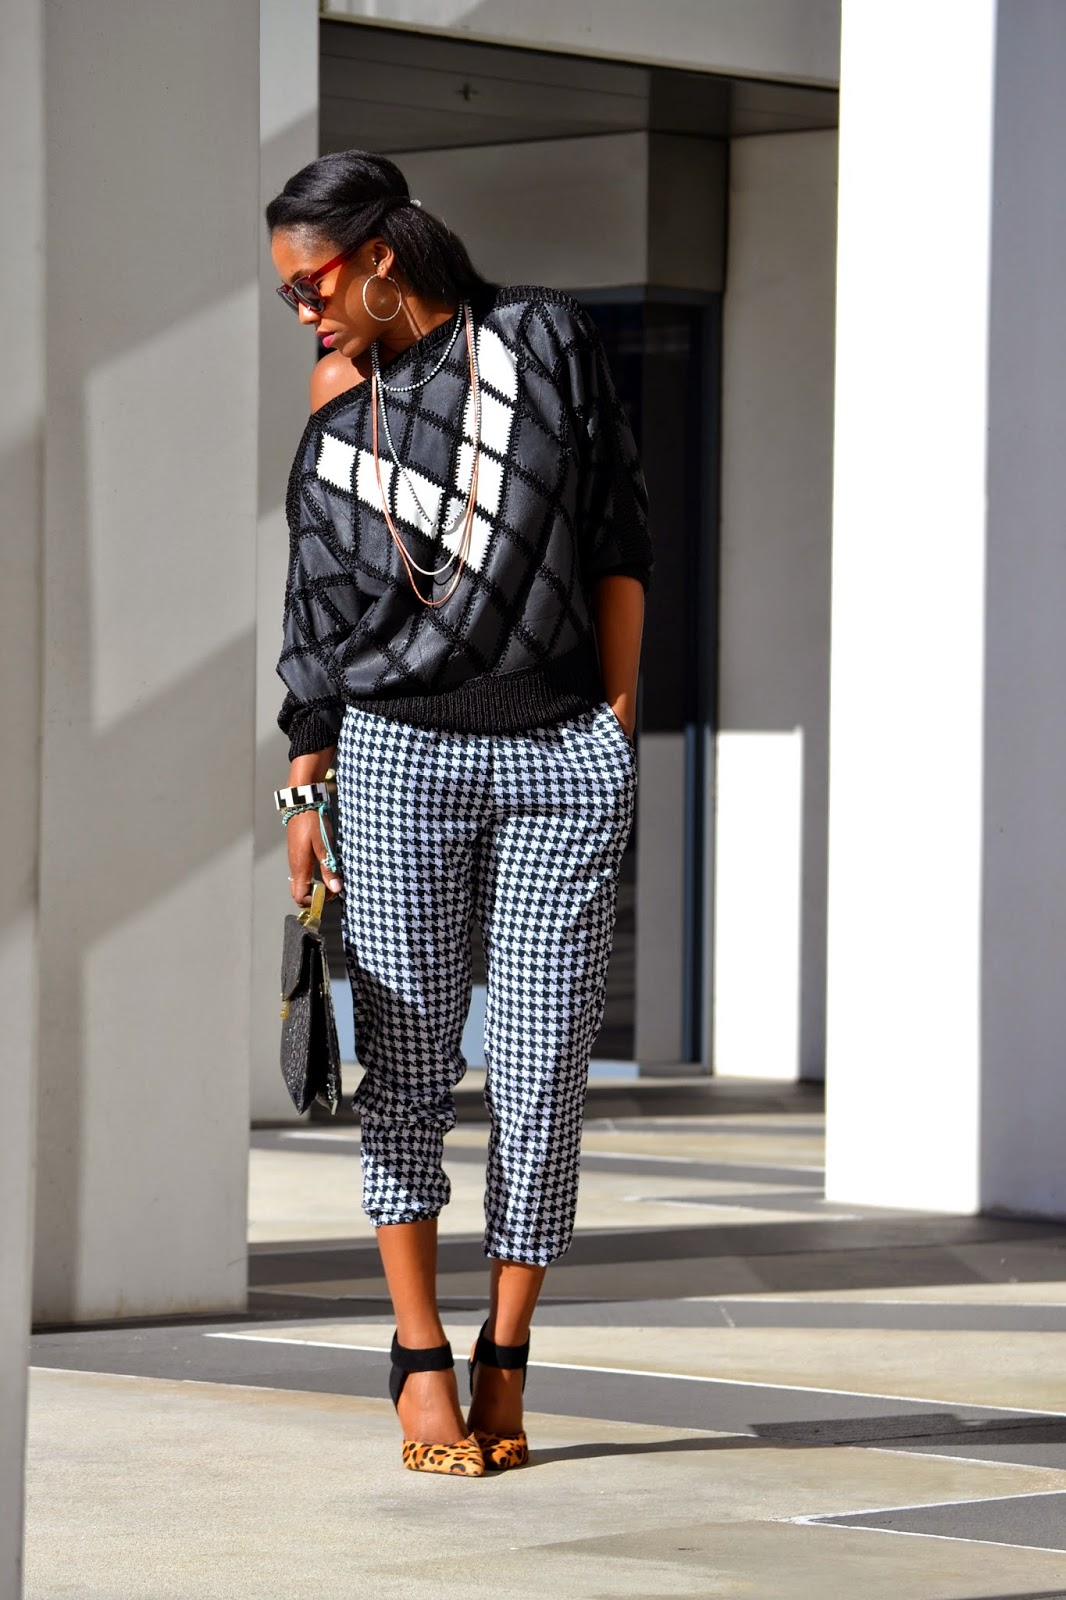 Marquise Brown fashion style blogger